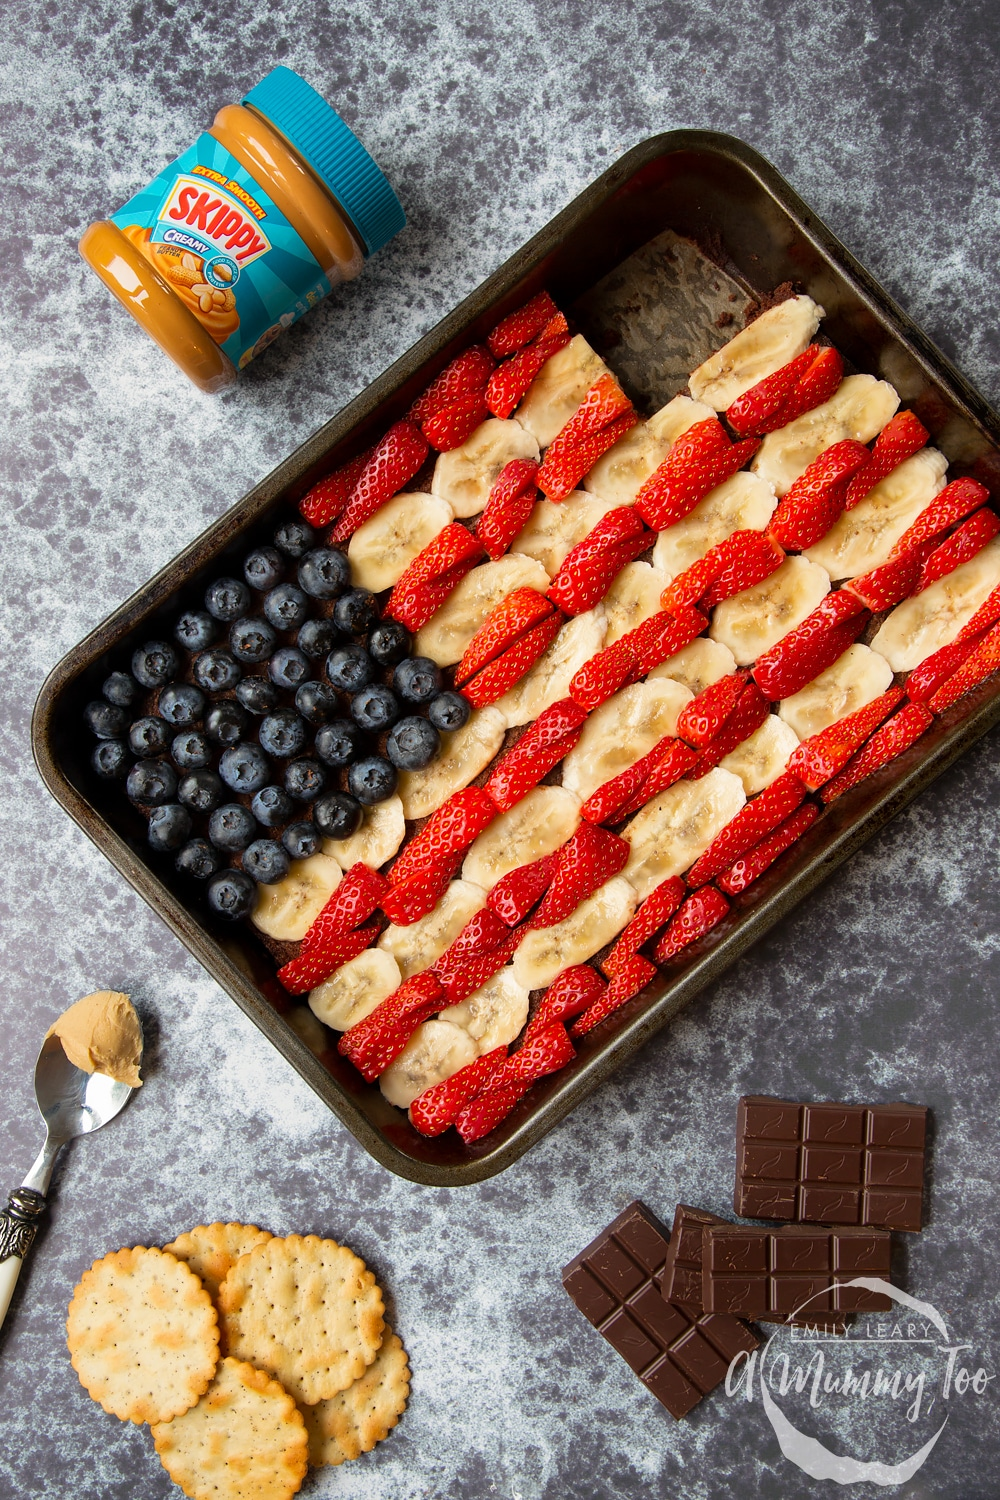 The decorated peanut butter brownies sheet pan with bananas strawberries and blueberries